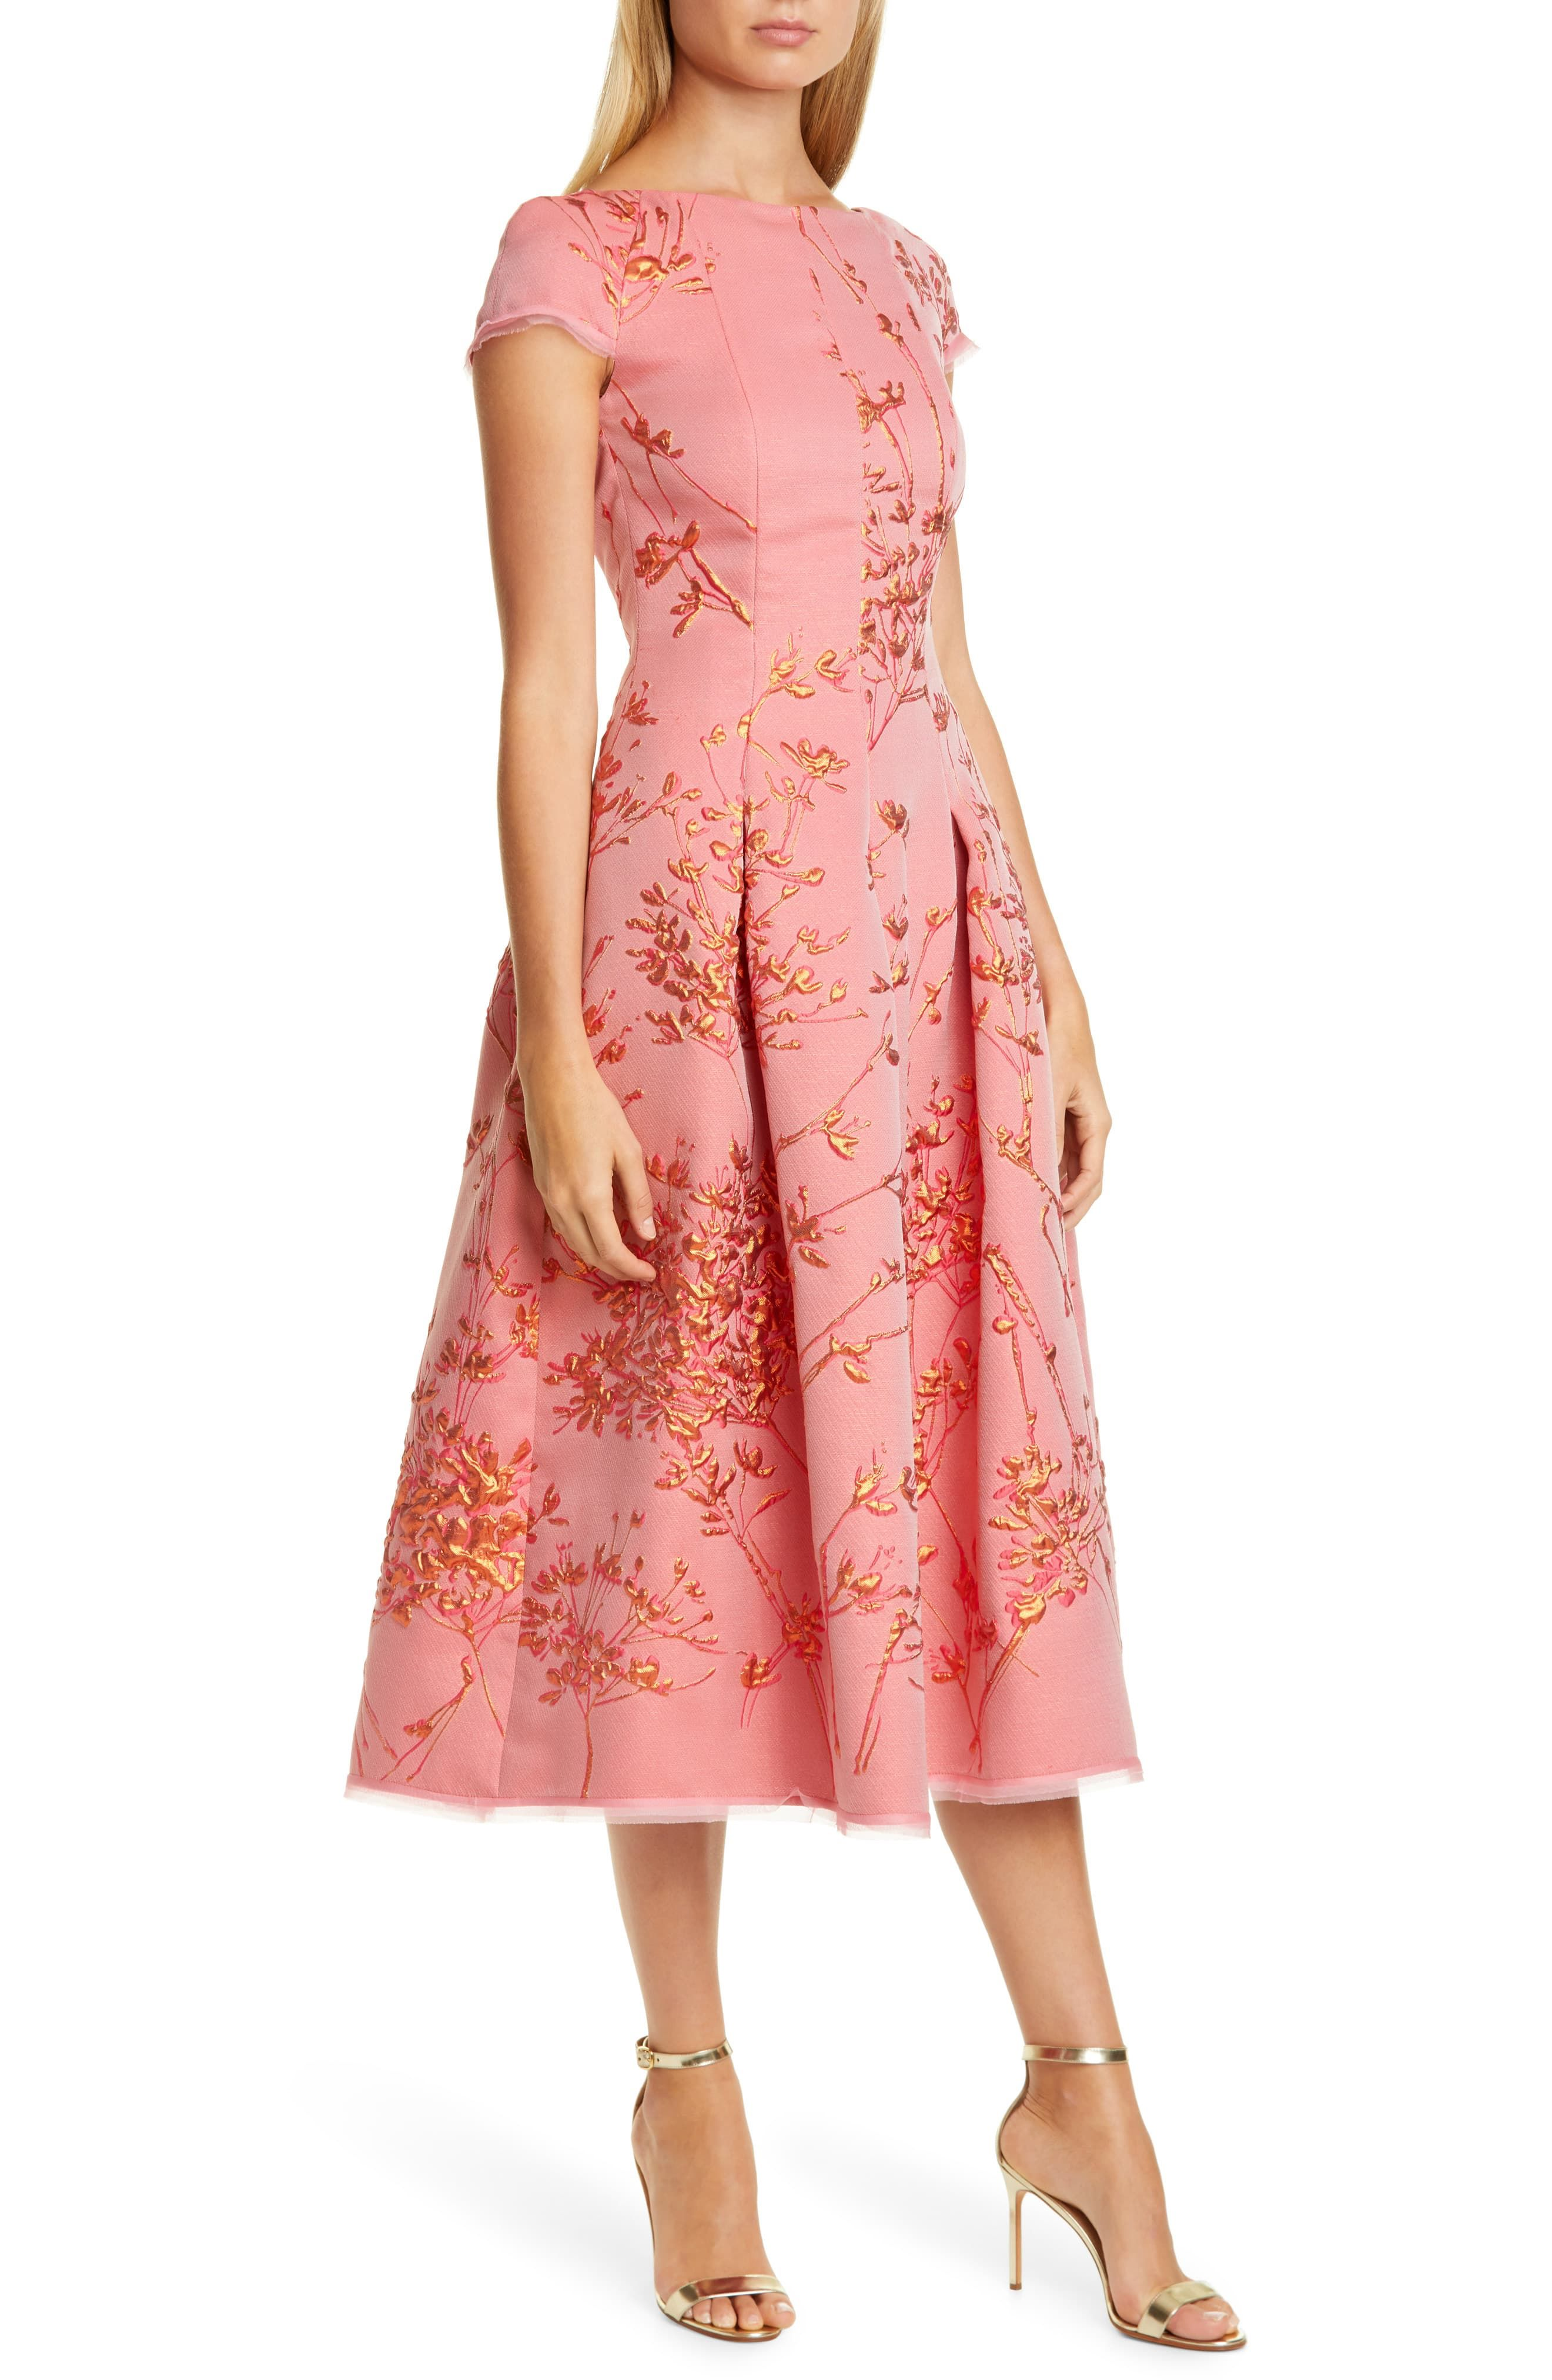 Talbot Runhof Silk Jacquard Twig Fit Flare Midi Dress Available At Nordstrom Select Dress Nordstrom Dresses Fashion Clothes Women [ 4048 x 2640 Pixel ]